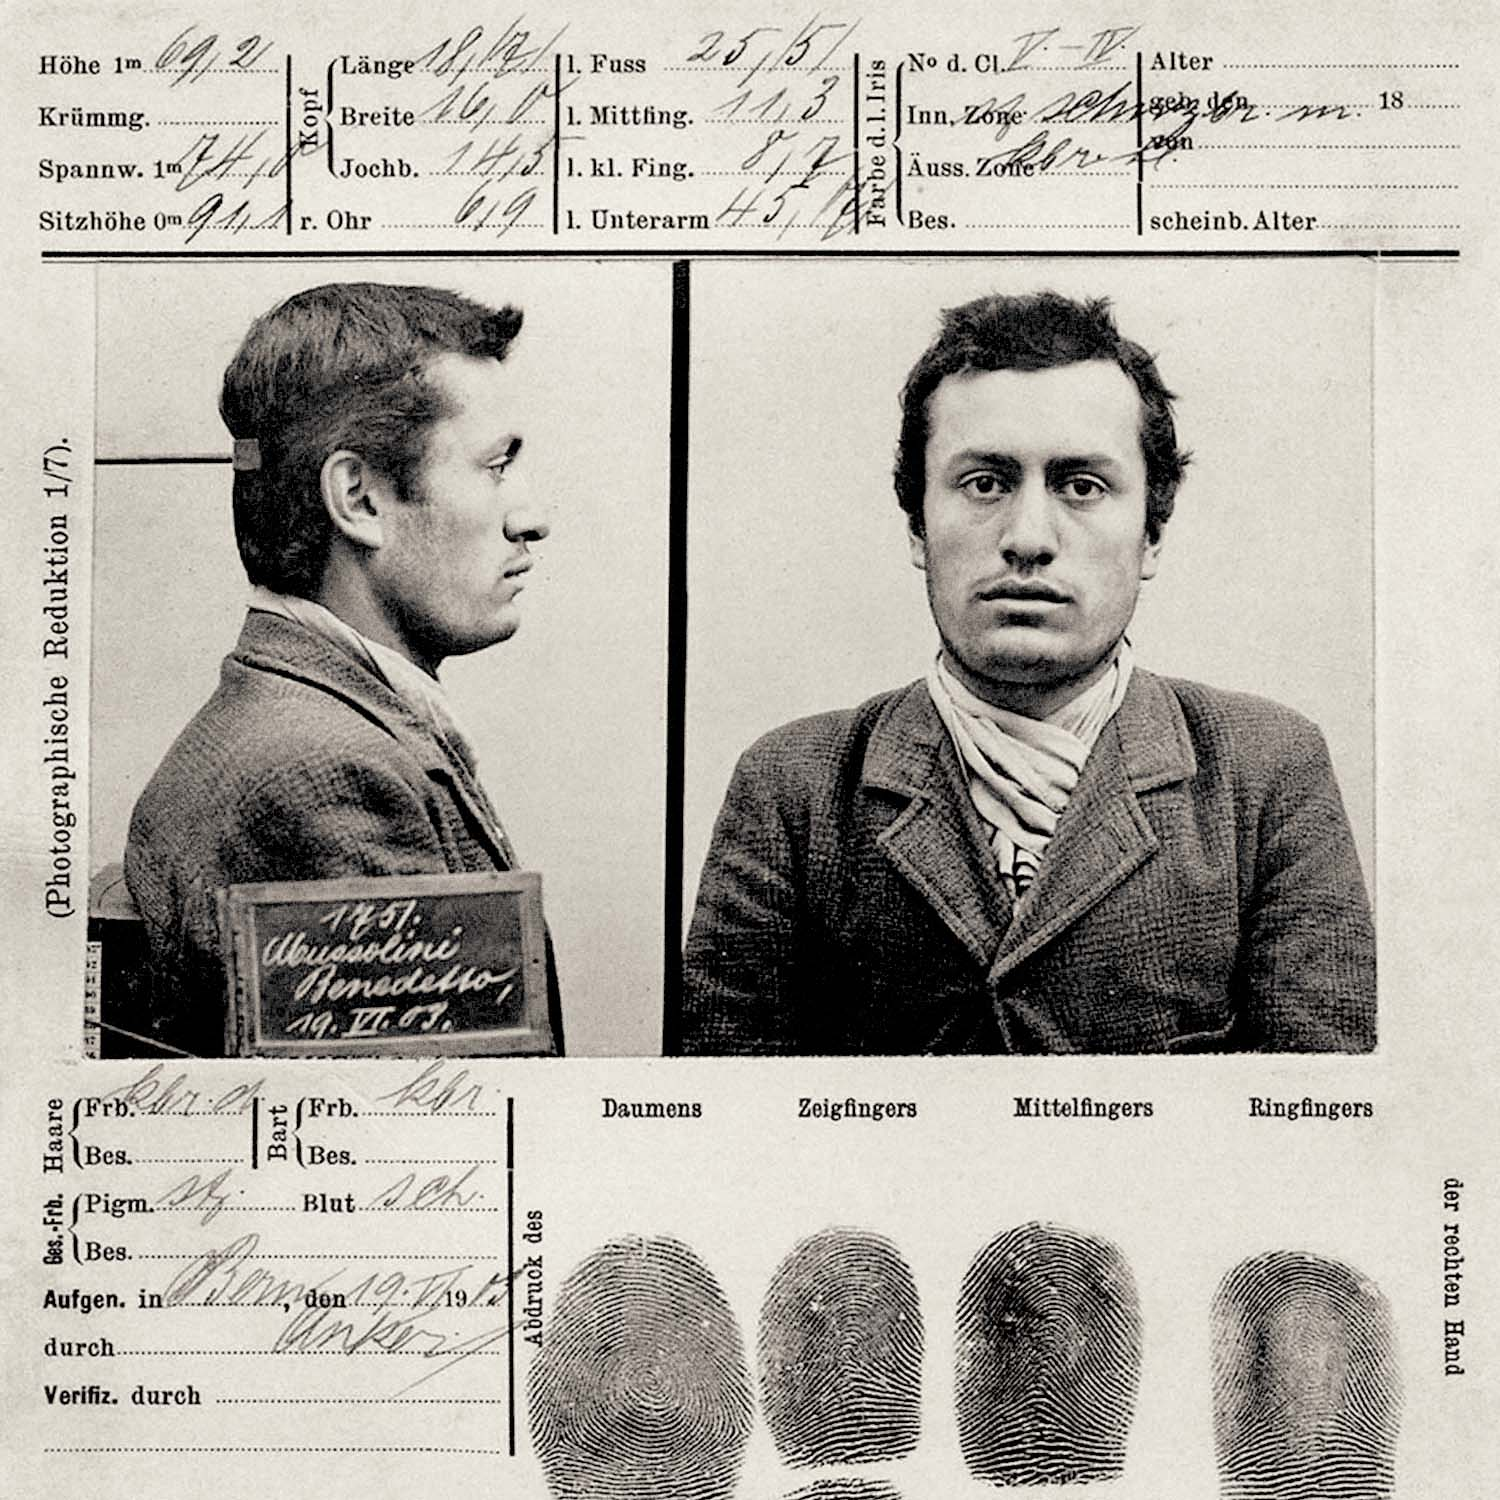 Benito Mussolini mugshot in 1903. In a preview of what was to come, the future Fascist leader of Italy was arrested in Switzerland for his advocacy for violent general strike.